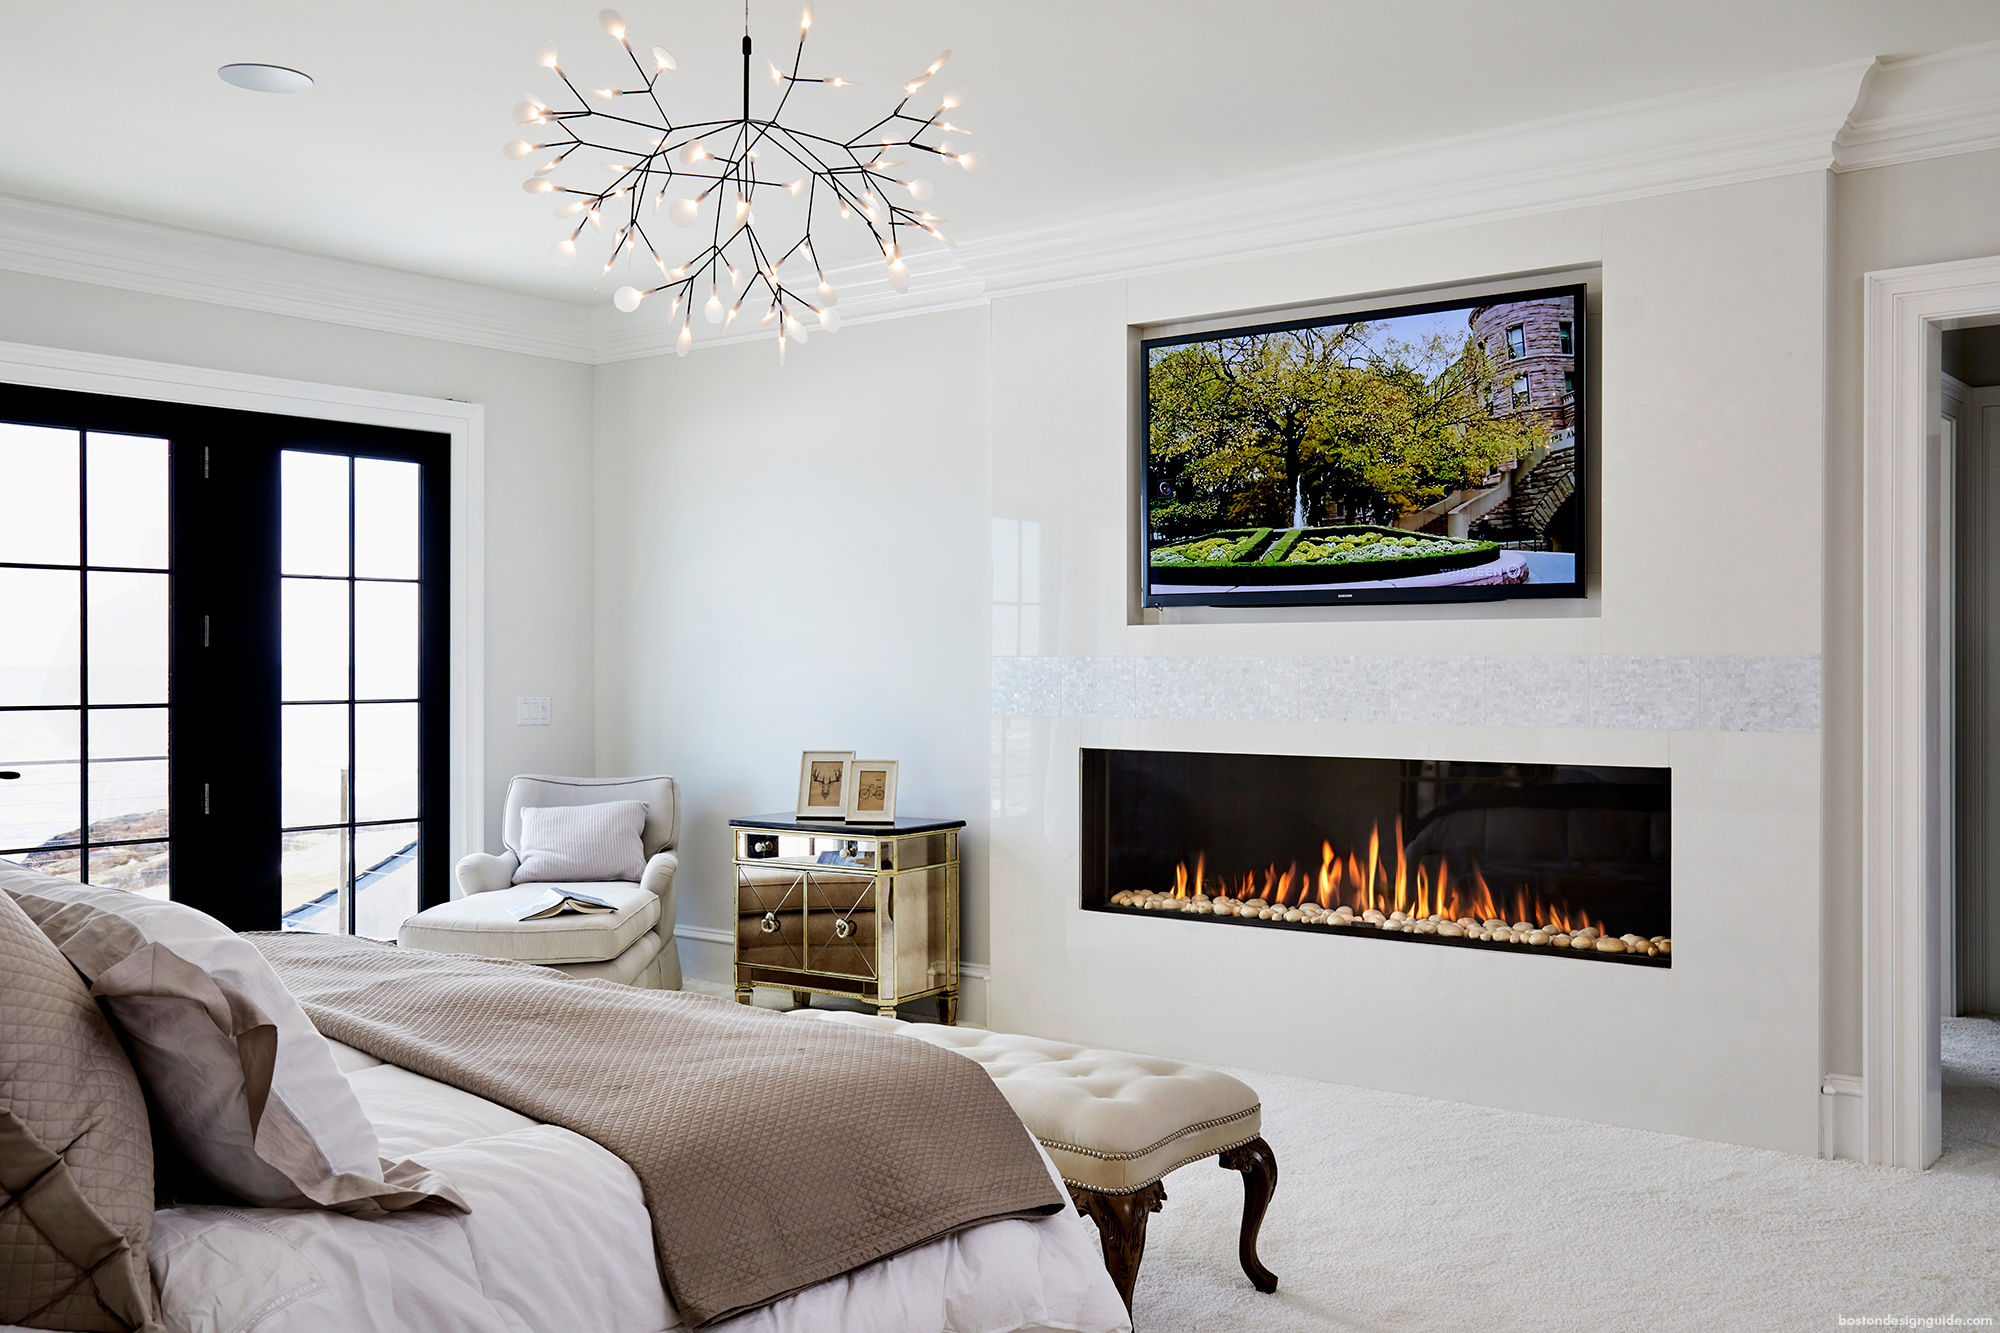 Heat Up Your Interiors with a Contemporary Fireplace | Boston Design ...